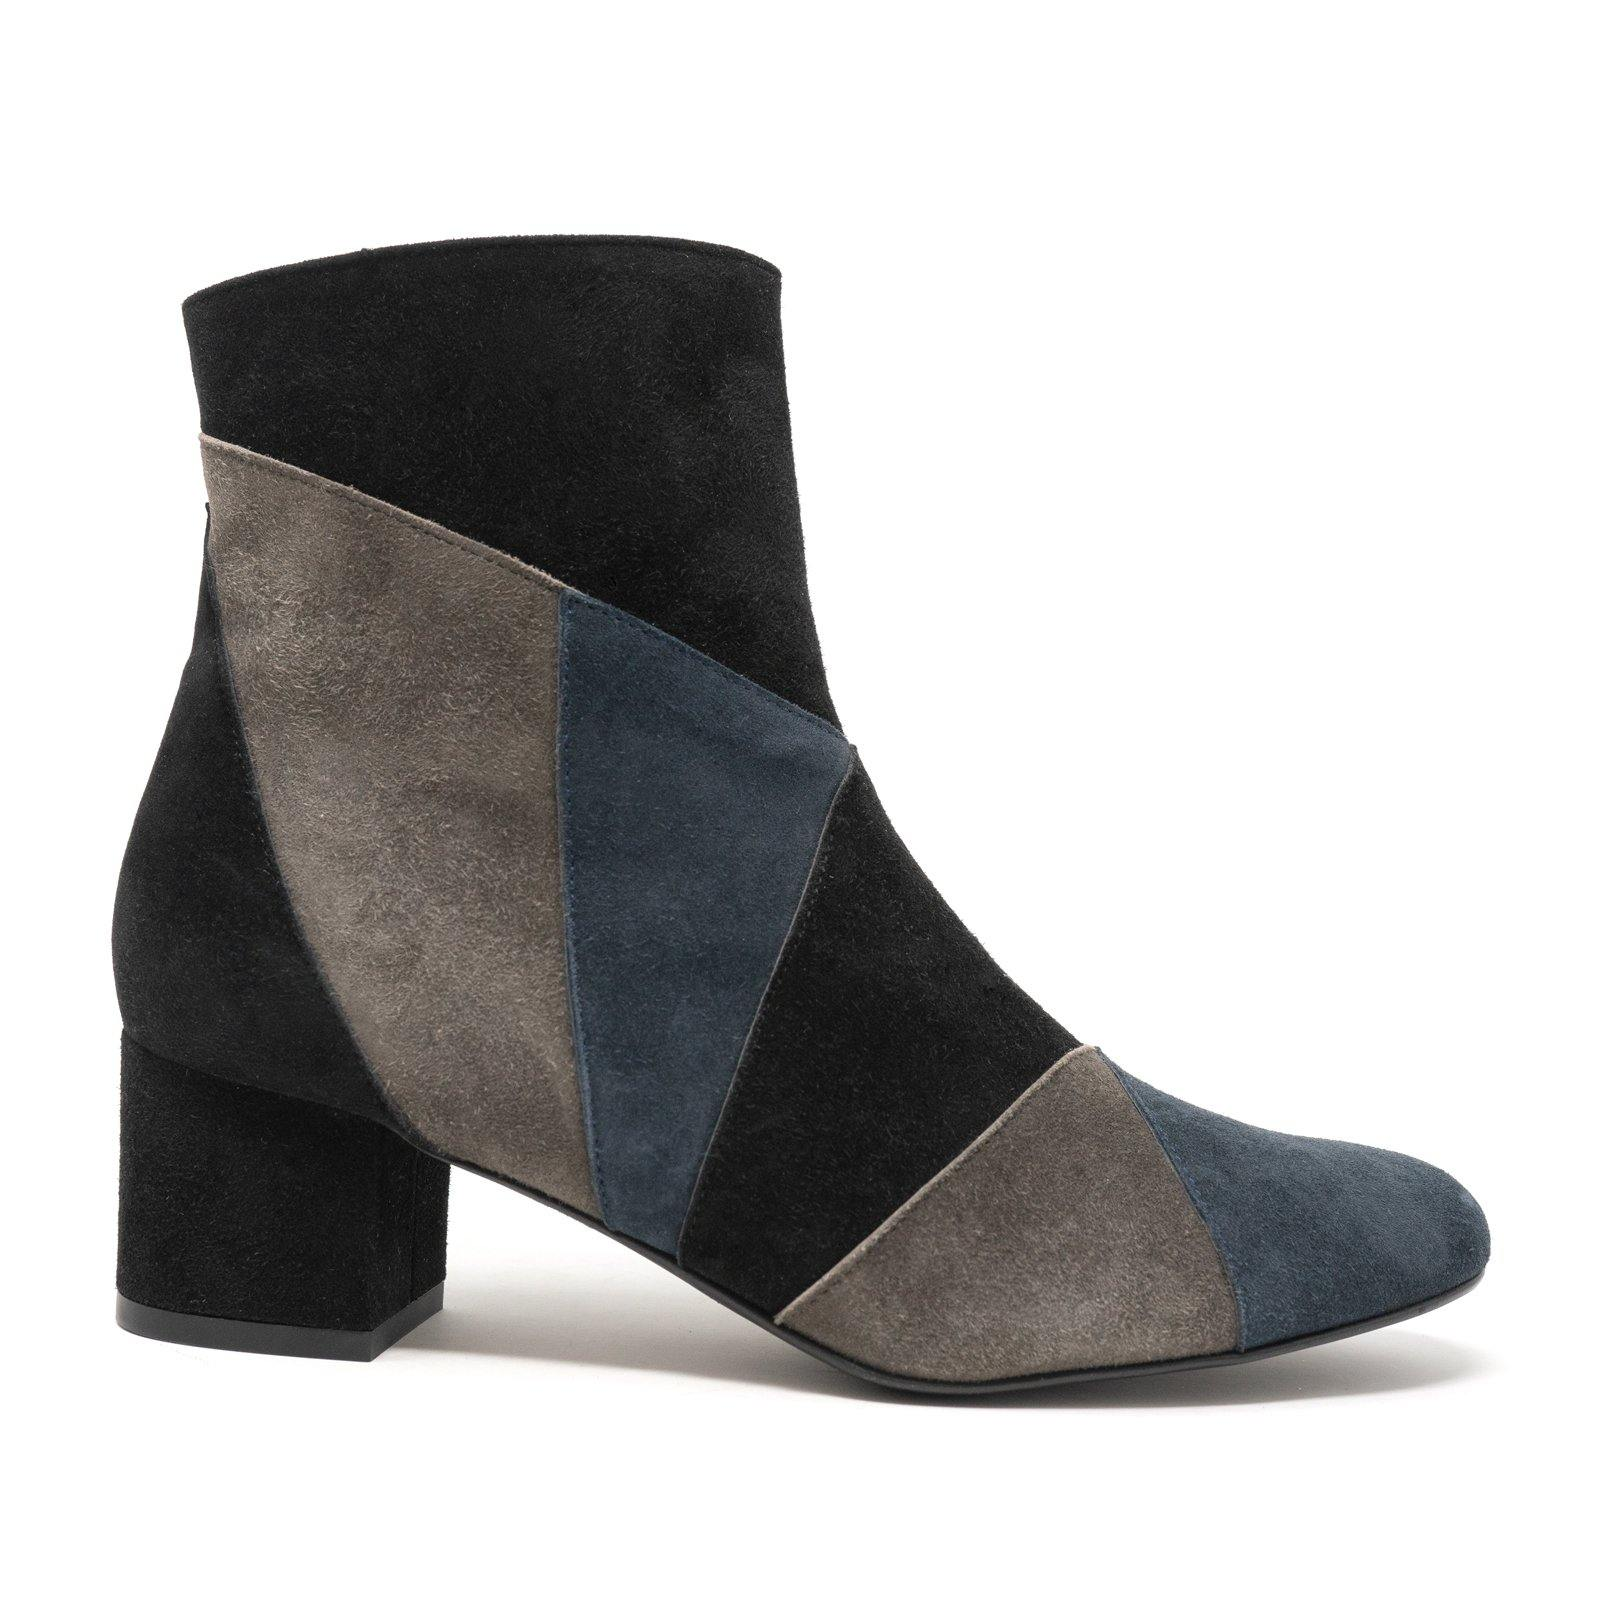 Women Dressy Leather Booties in Black, Blu and Grey